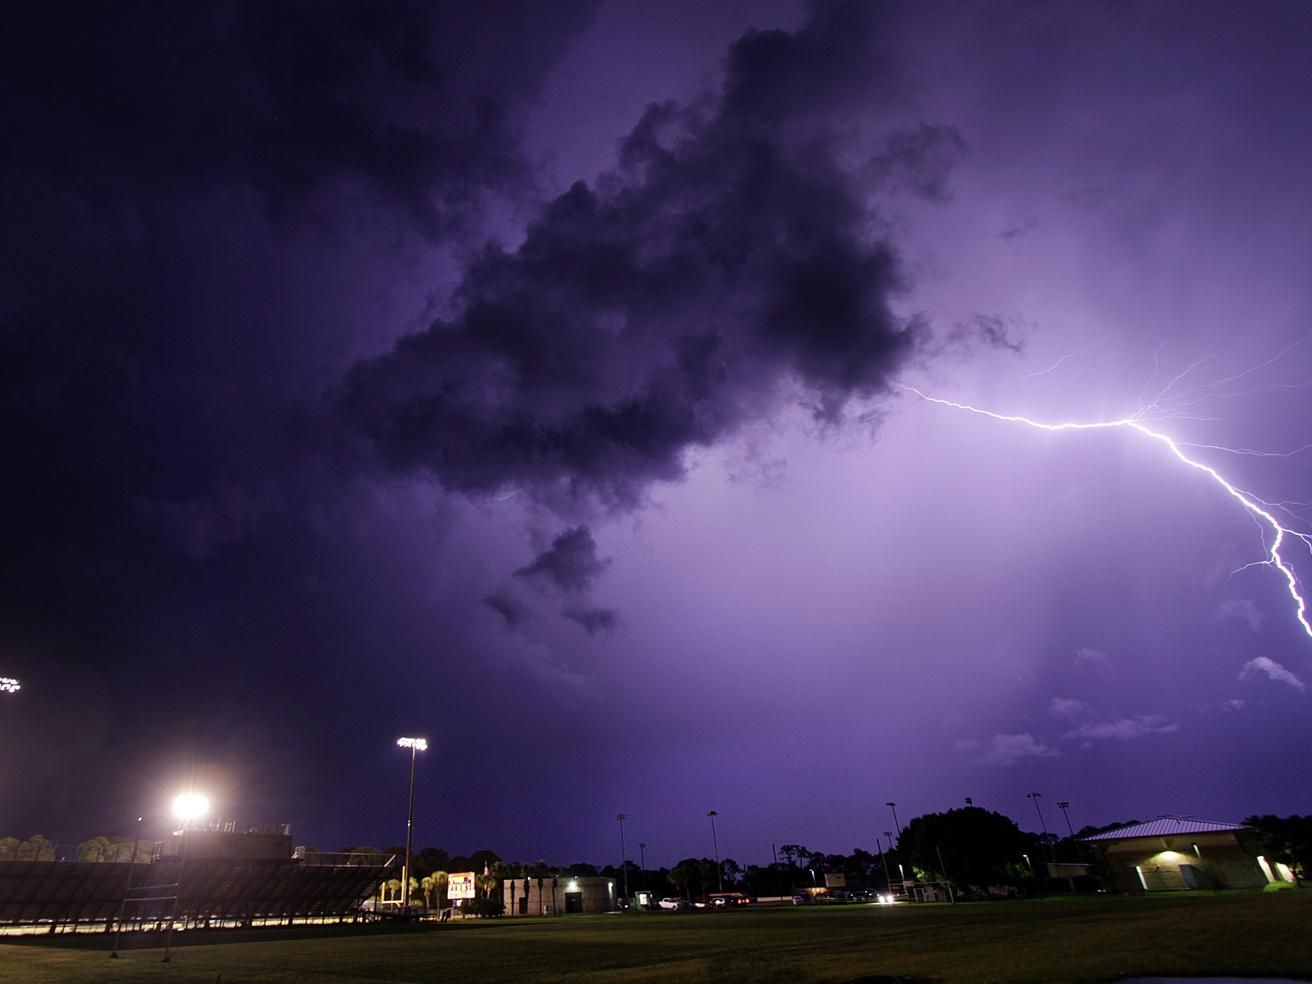 Florida S All About Football But Watch Out For The Lightning